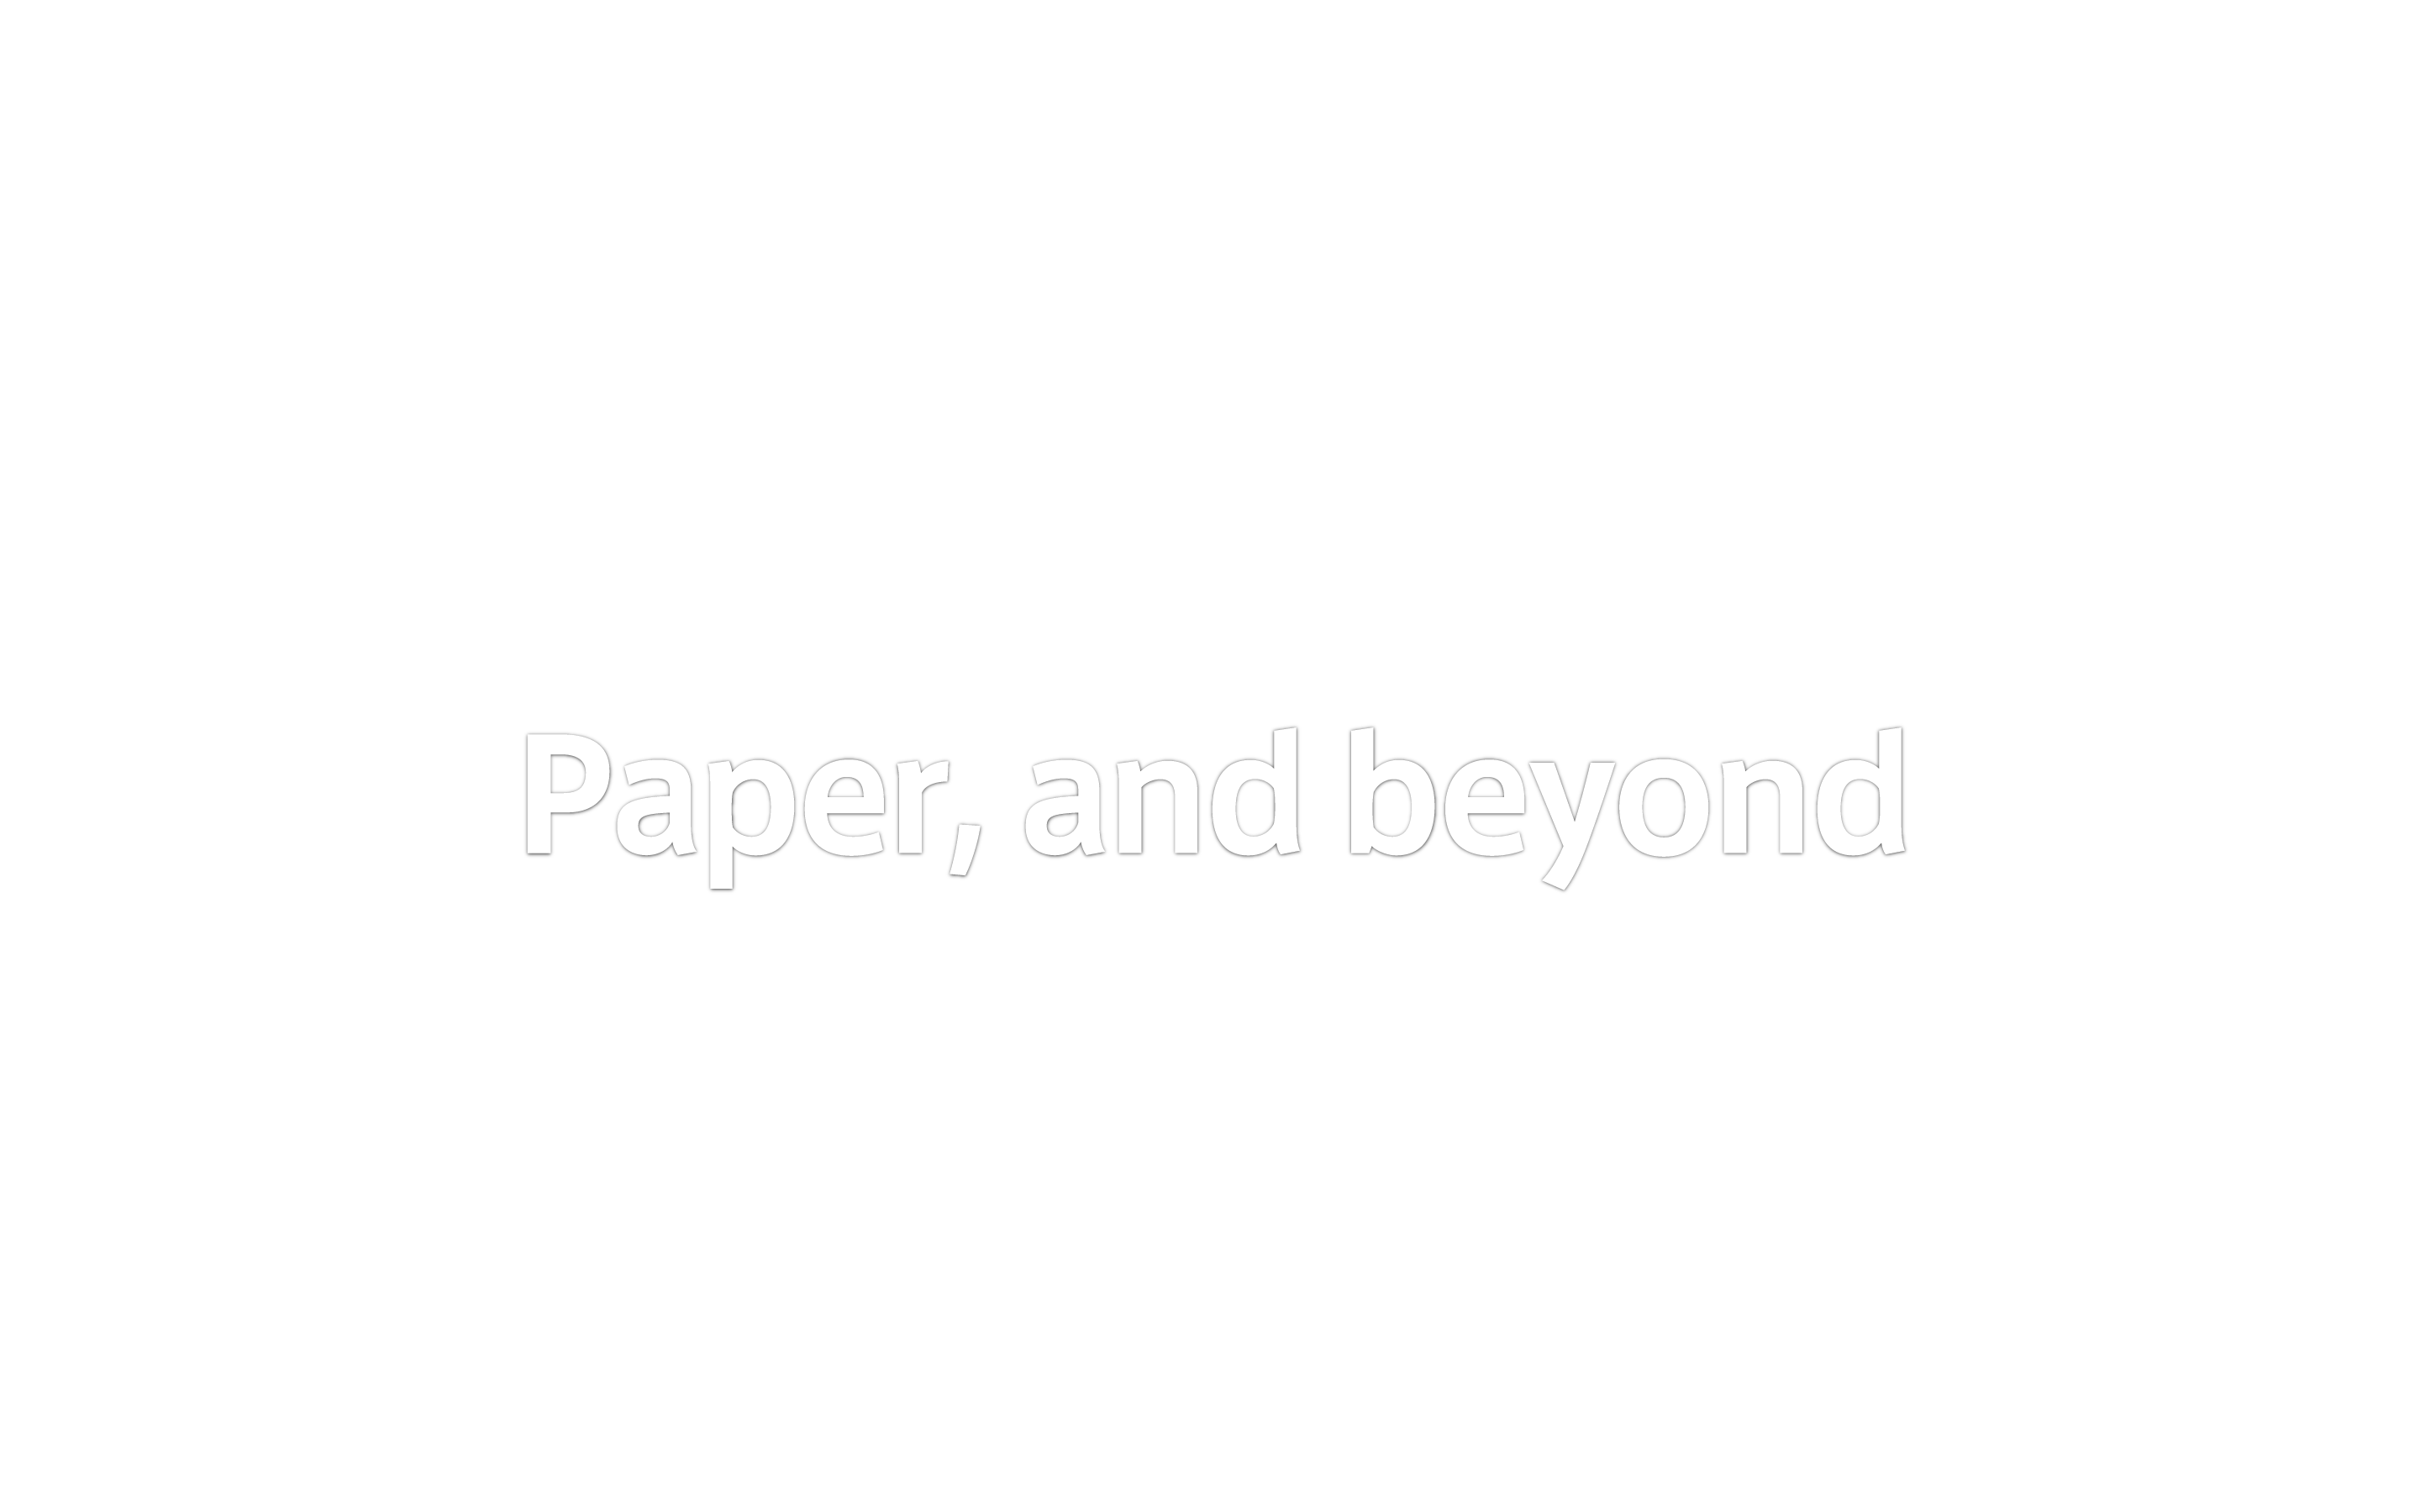 Paper, and beyond